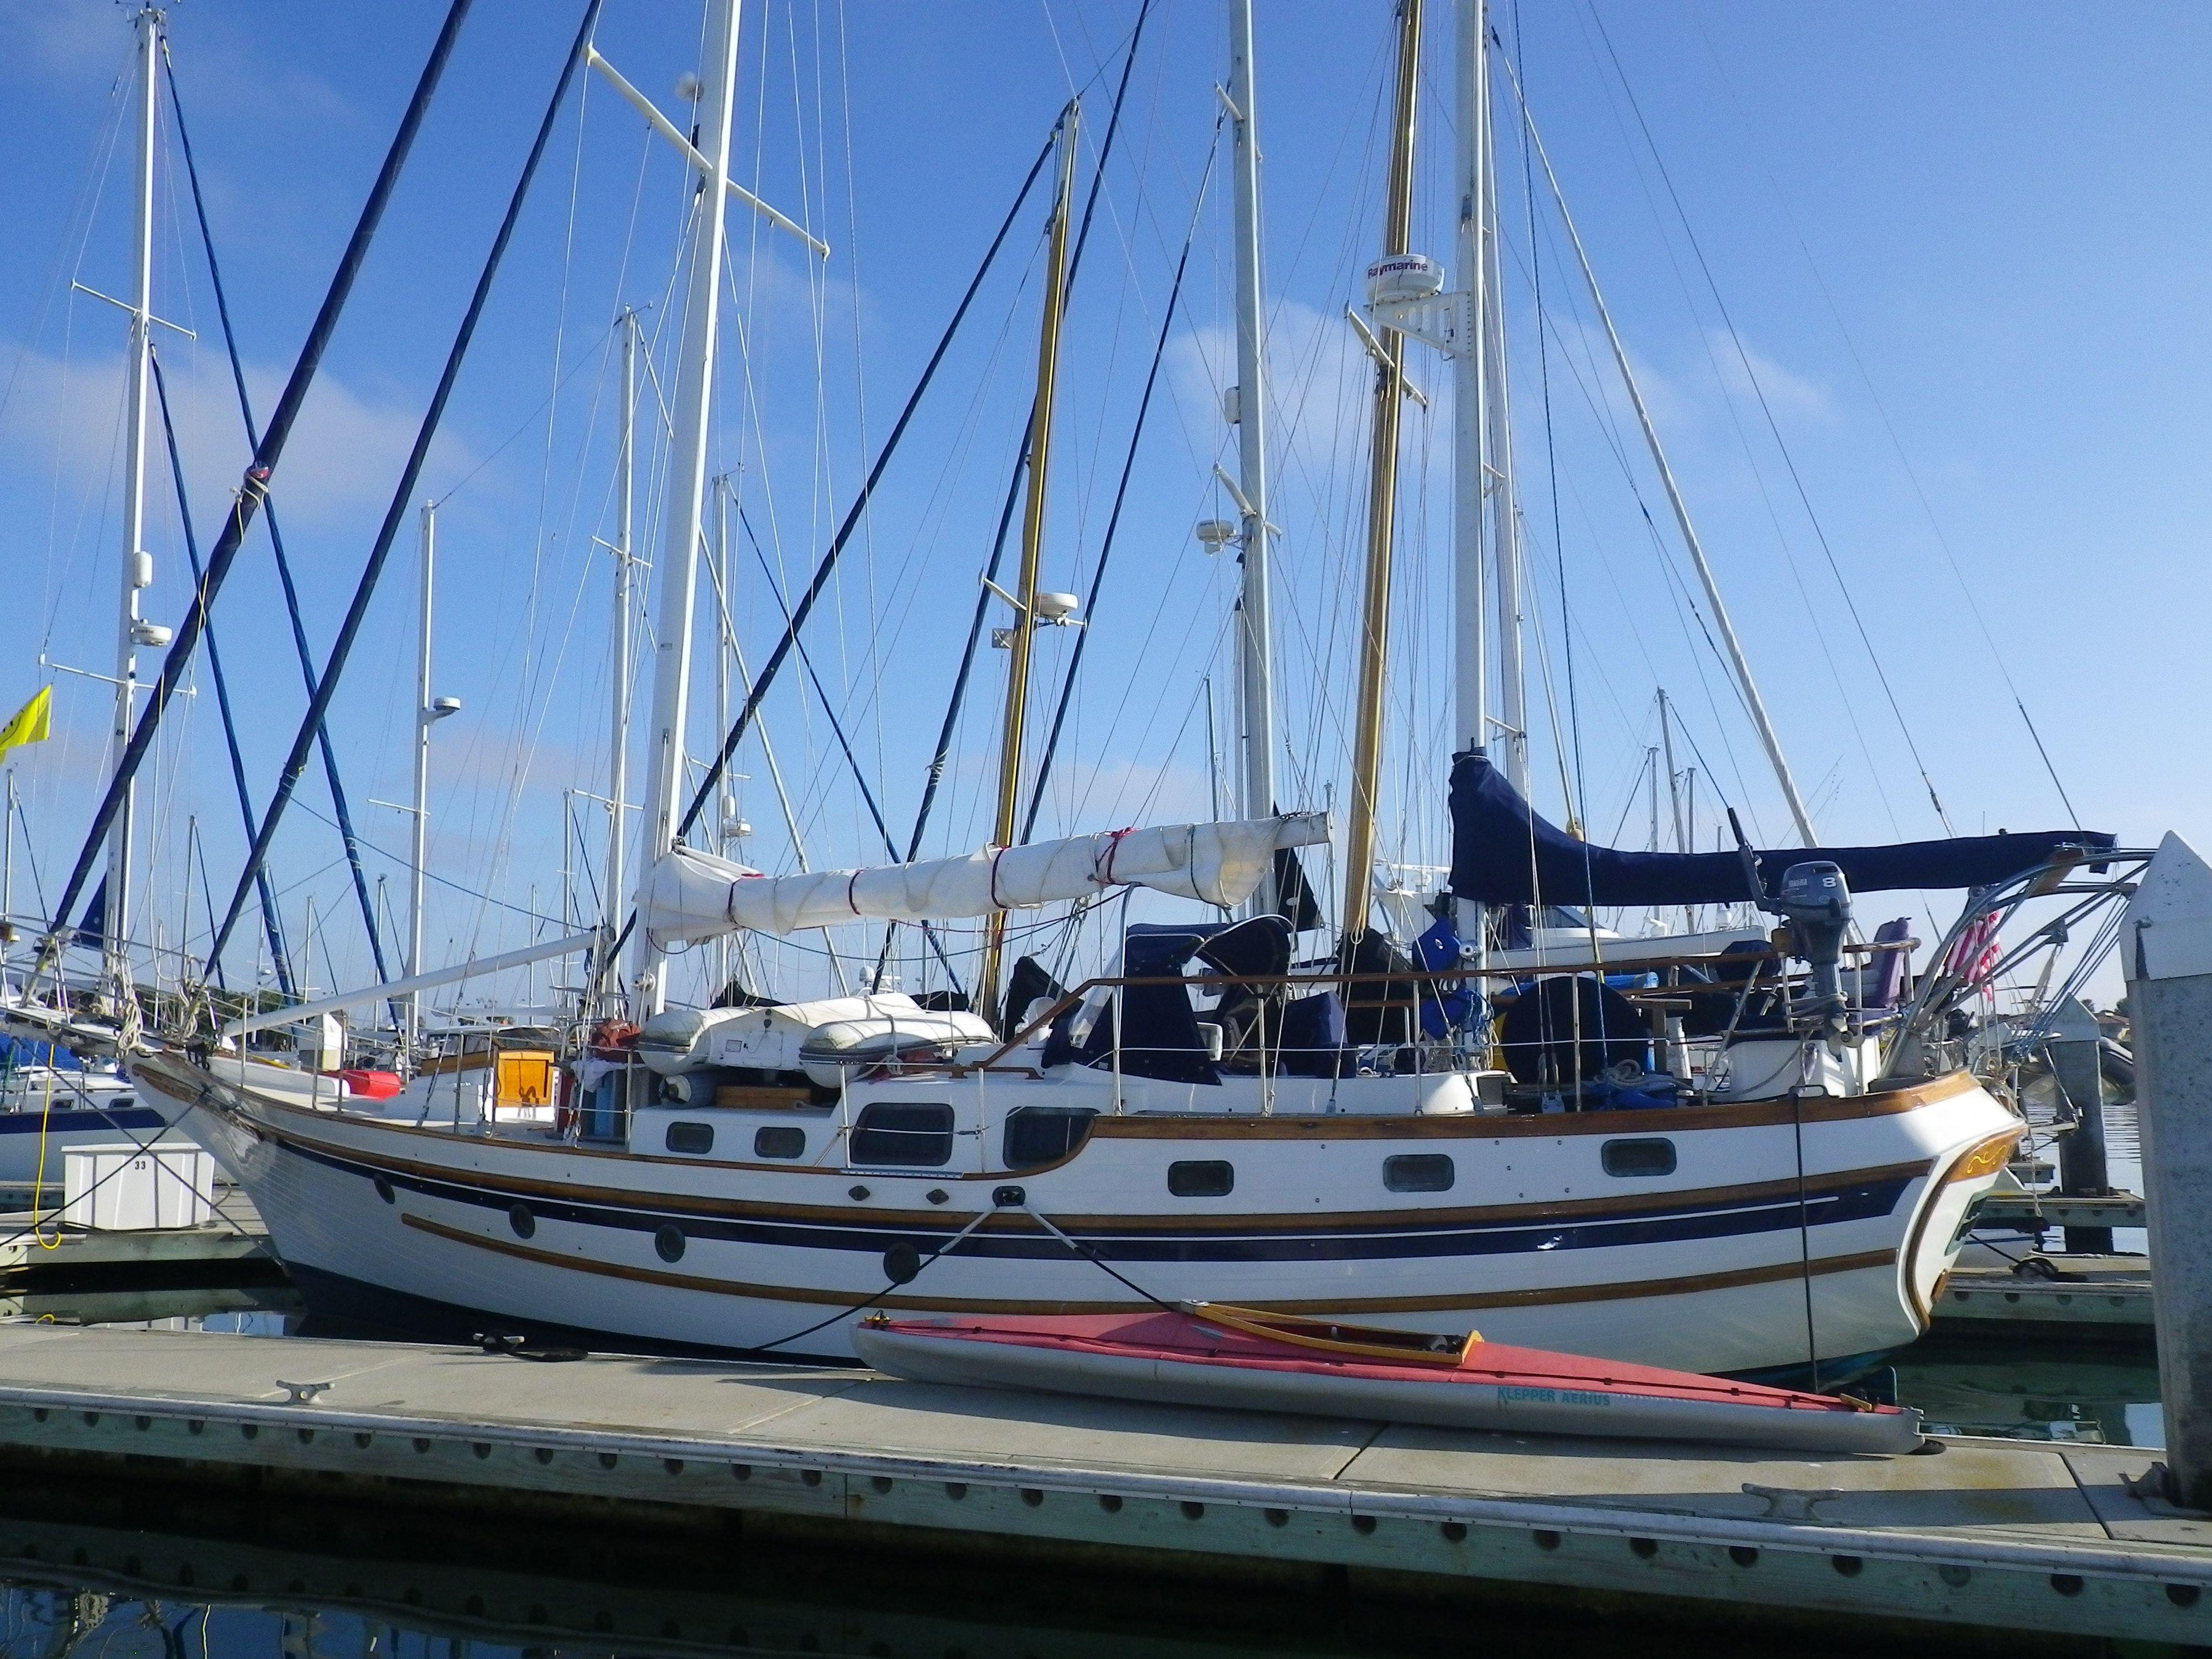 1986 bluewater yachts vagabond 47 yacht for sale in la paz bcs  mexico